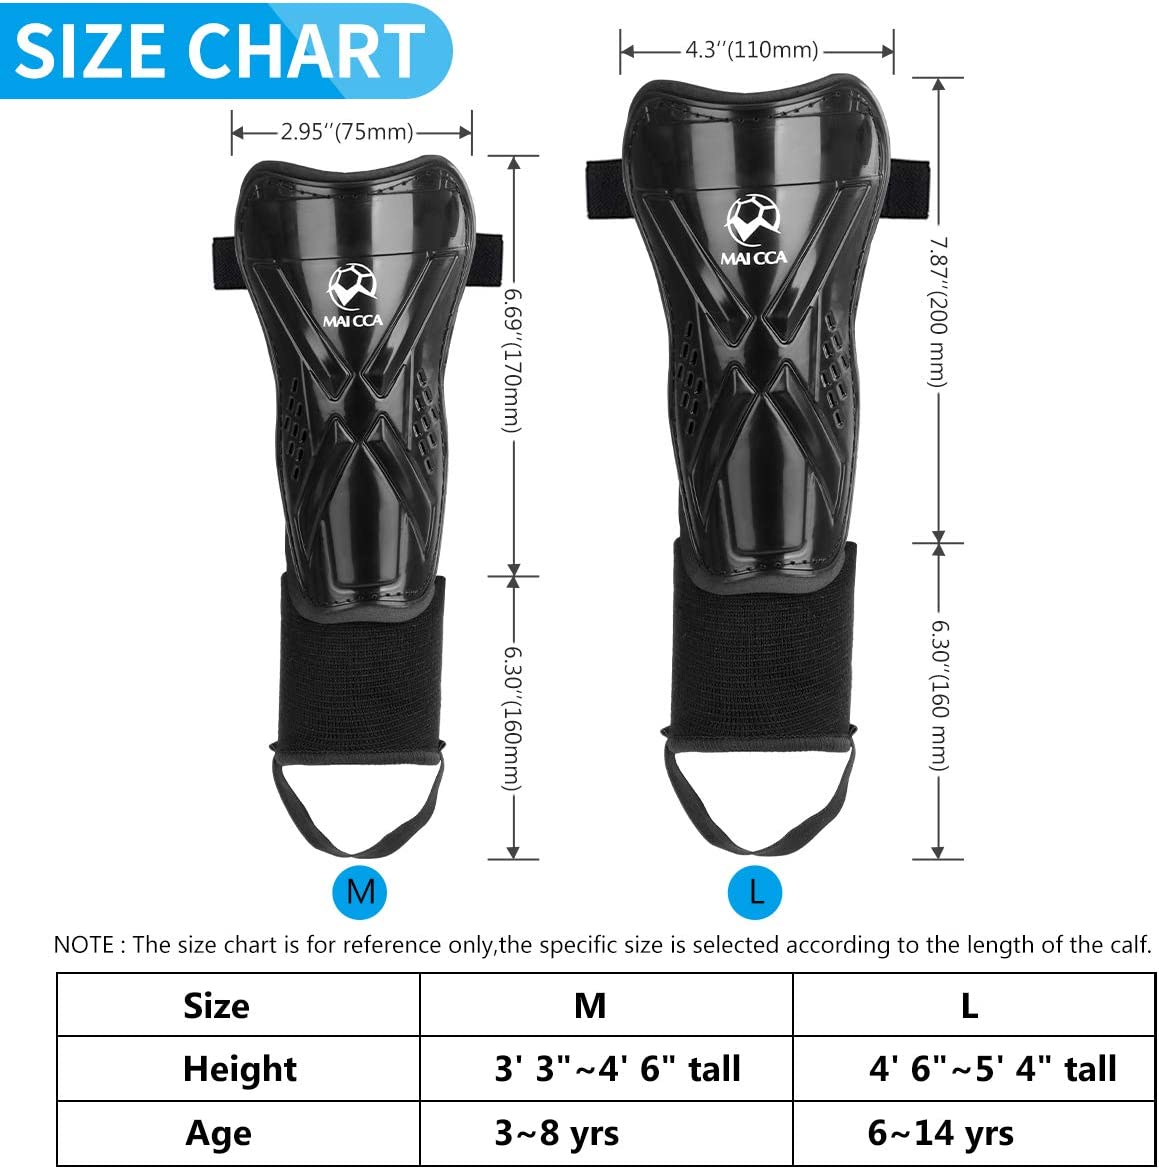 Outfun Youth Soccer Shin Guards, Kids Soccer Shin Pads, Child Calf Protective Gear, Soccer Equipment with Ankle Sleeves for 3-14 Years Old Boys Girls Toddler Kids Teenagers : Sports & Outdoors